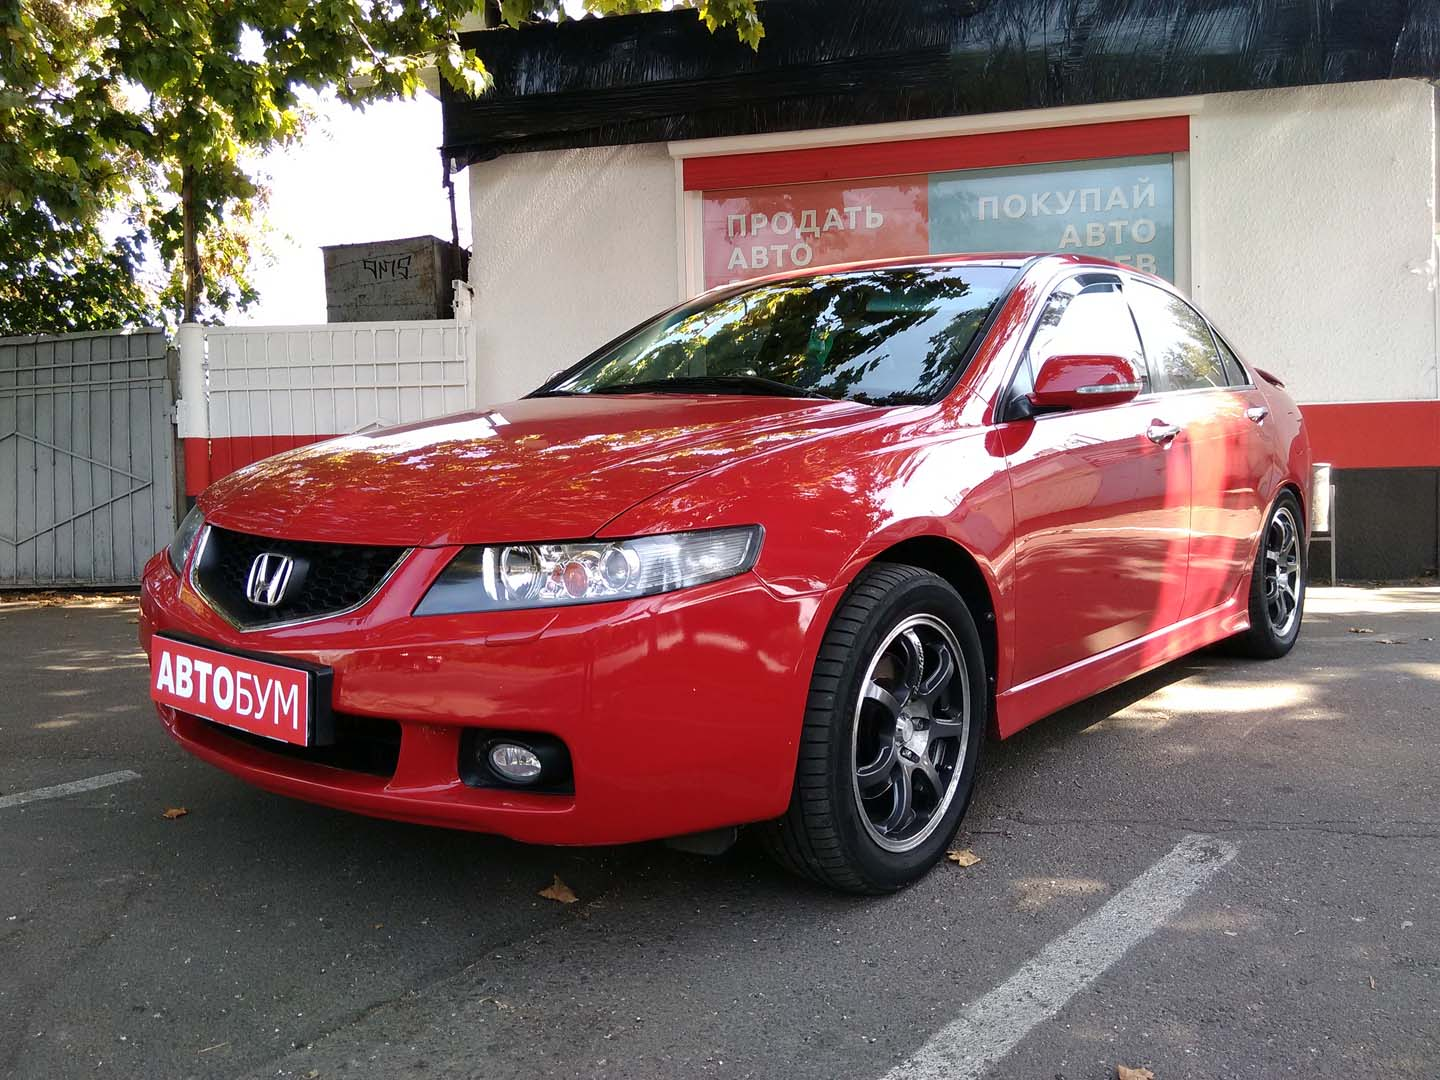 Авто Honda Accord 2004 года - фото